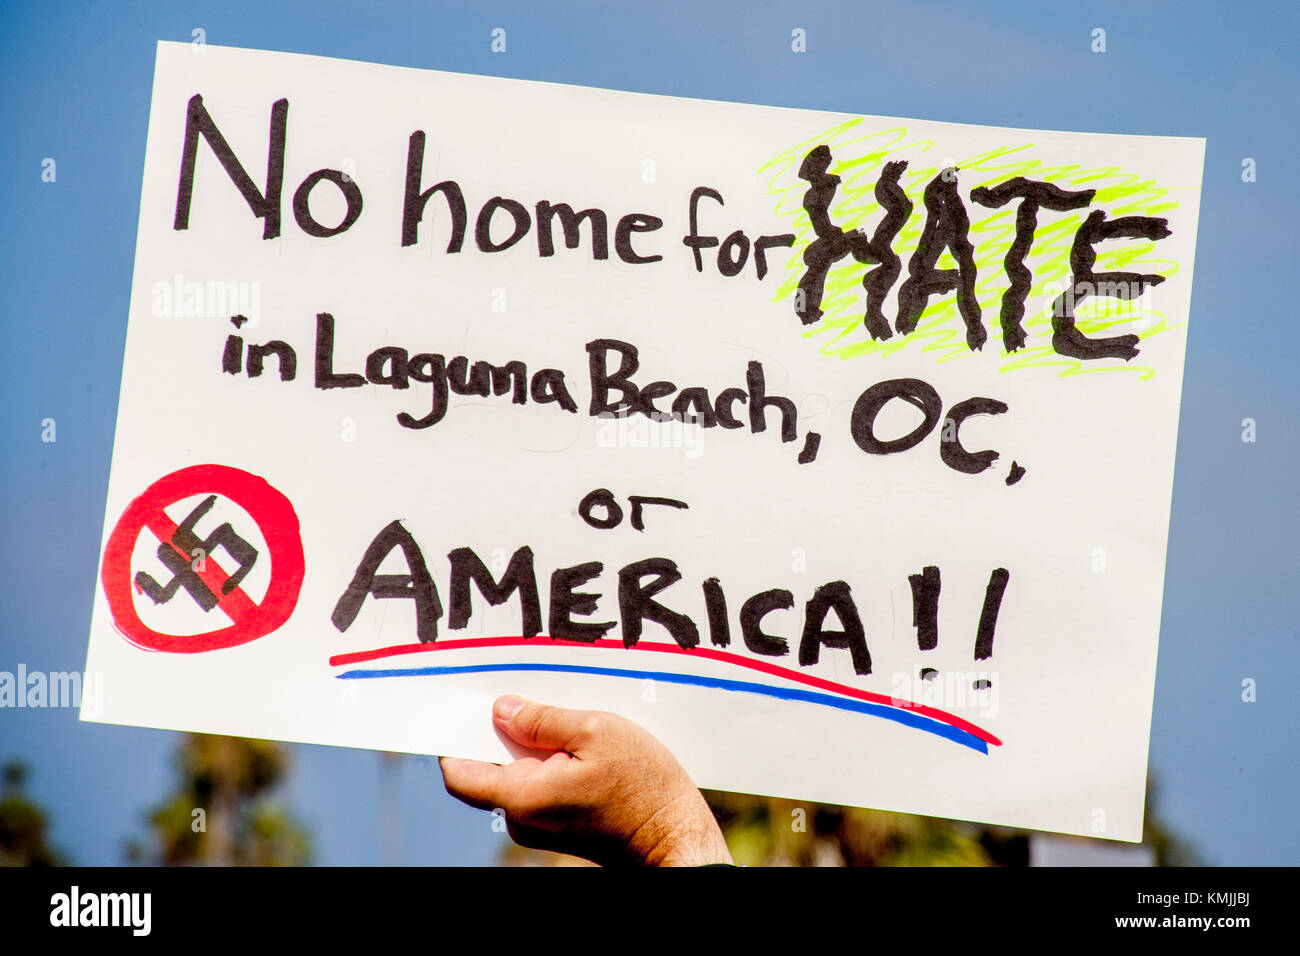 A counter demonstrator's sign expresses toleration at an anti-immigration rally in Laguna Beach, CA. - Stock Image